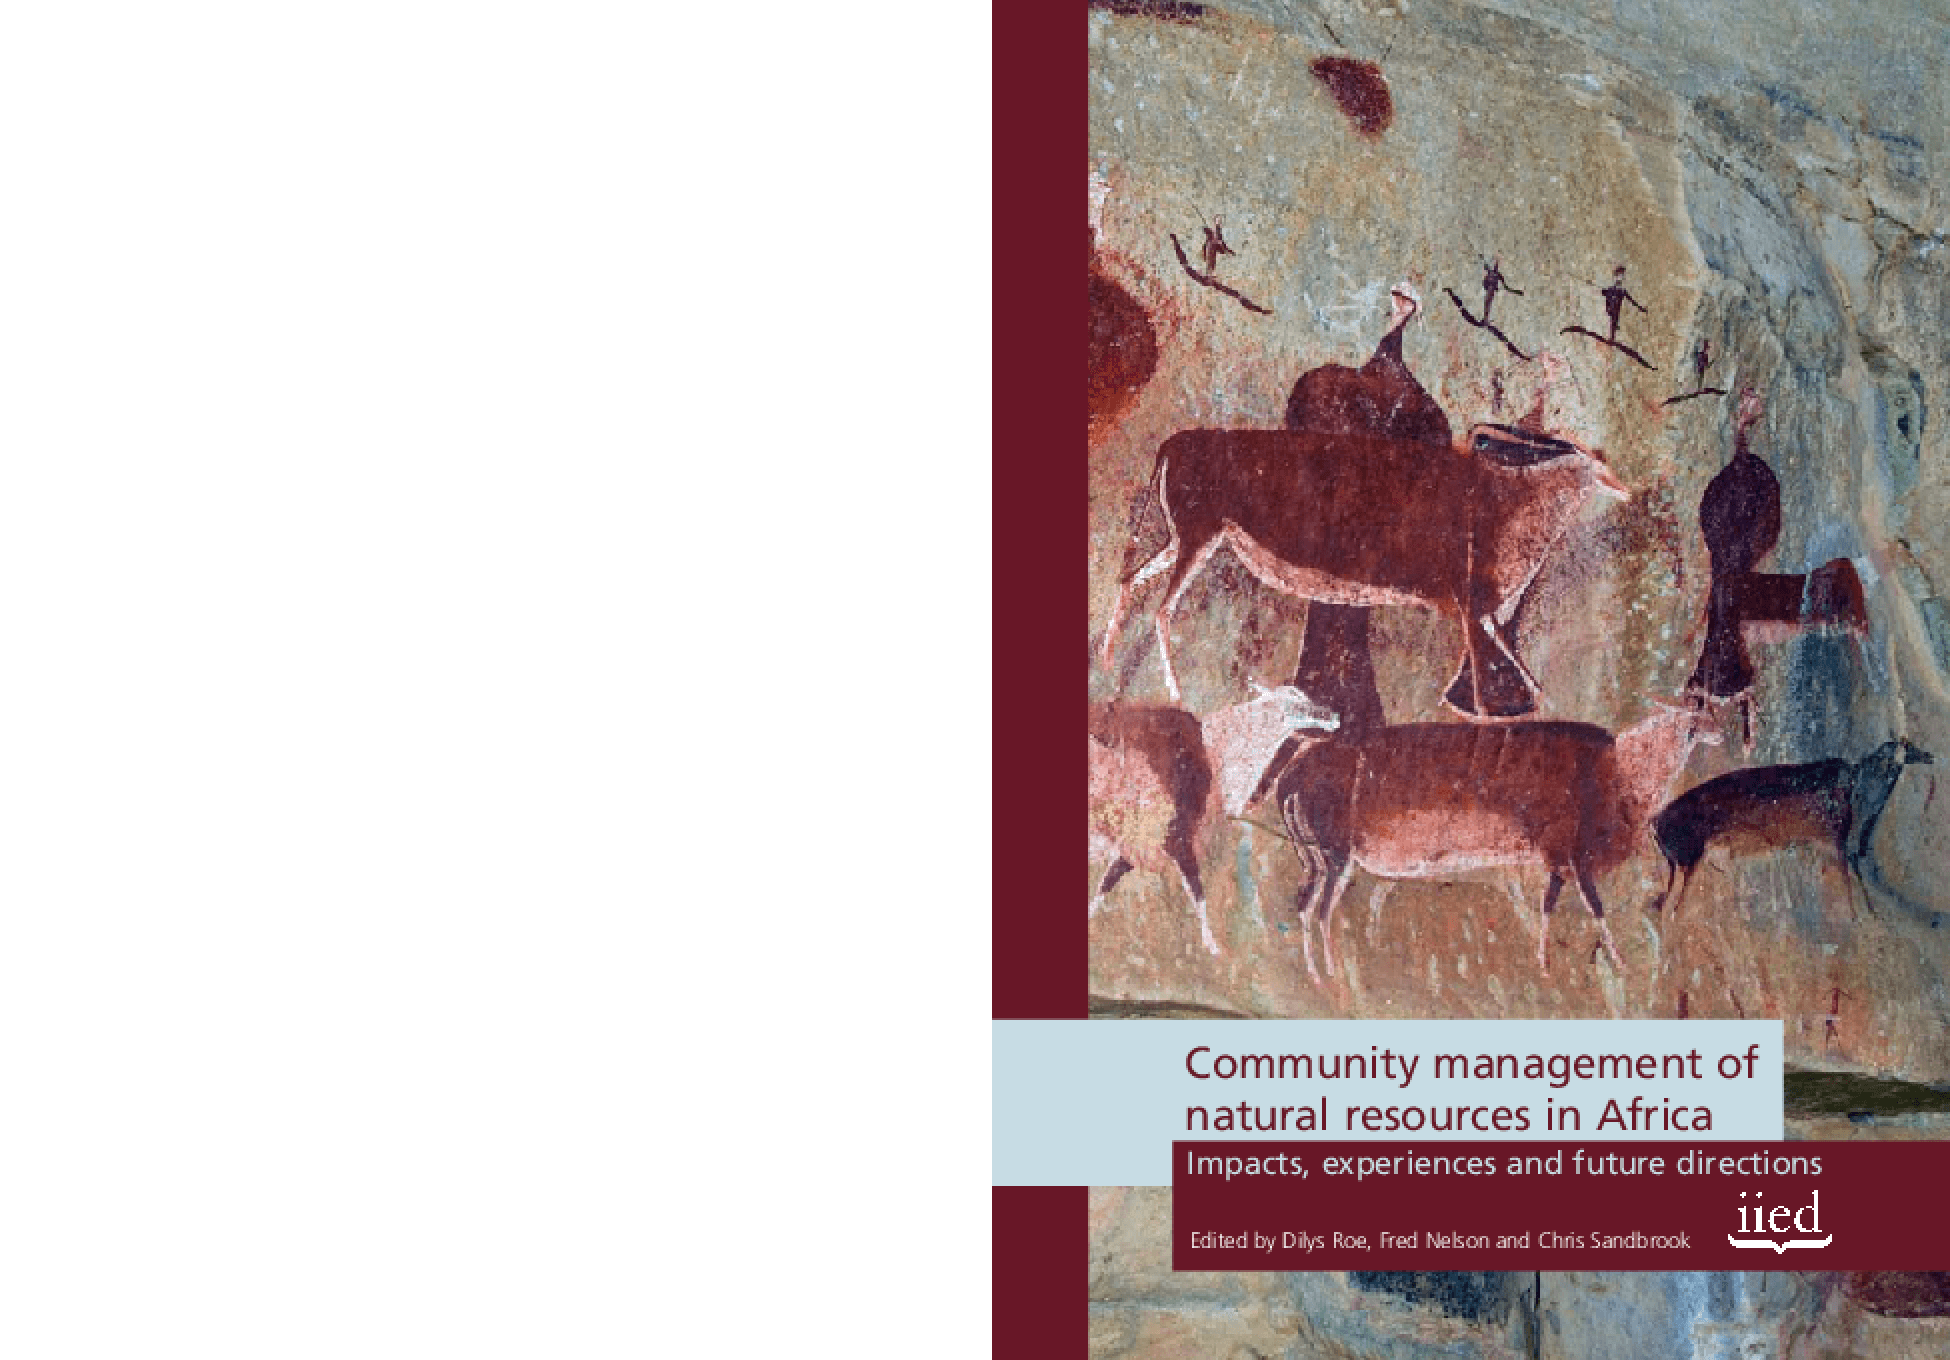 Community Management of Natural Resources in Africa: Impacts, Experiences and Future Directions